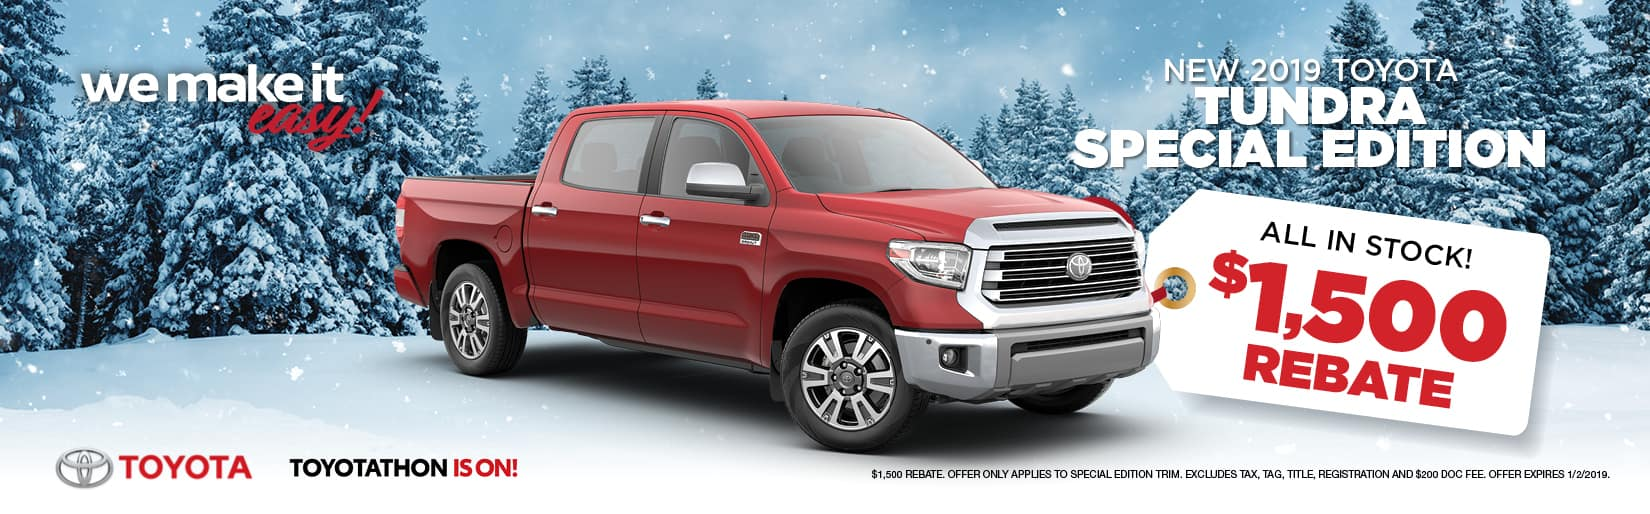 19 TUNDRA SPECIAL EDITION REBATE